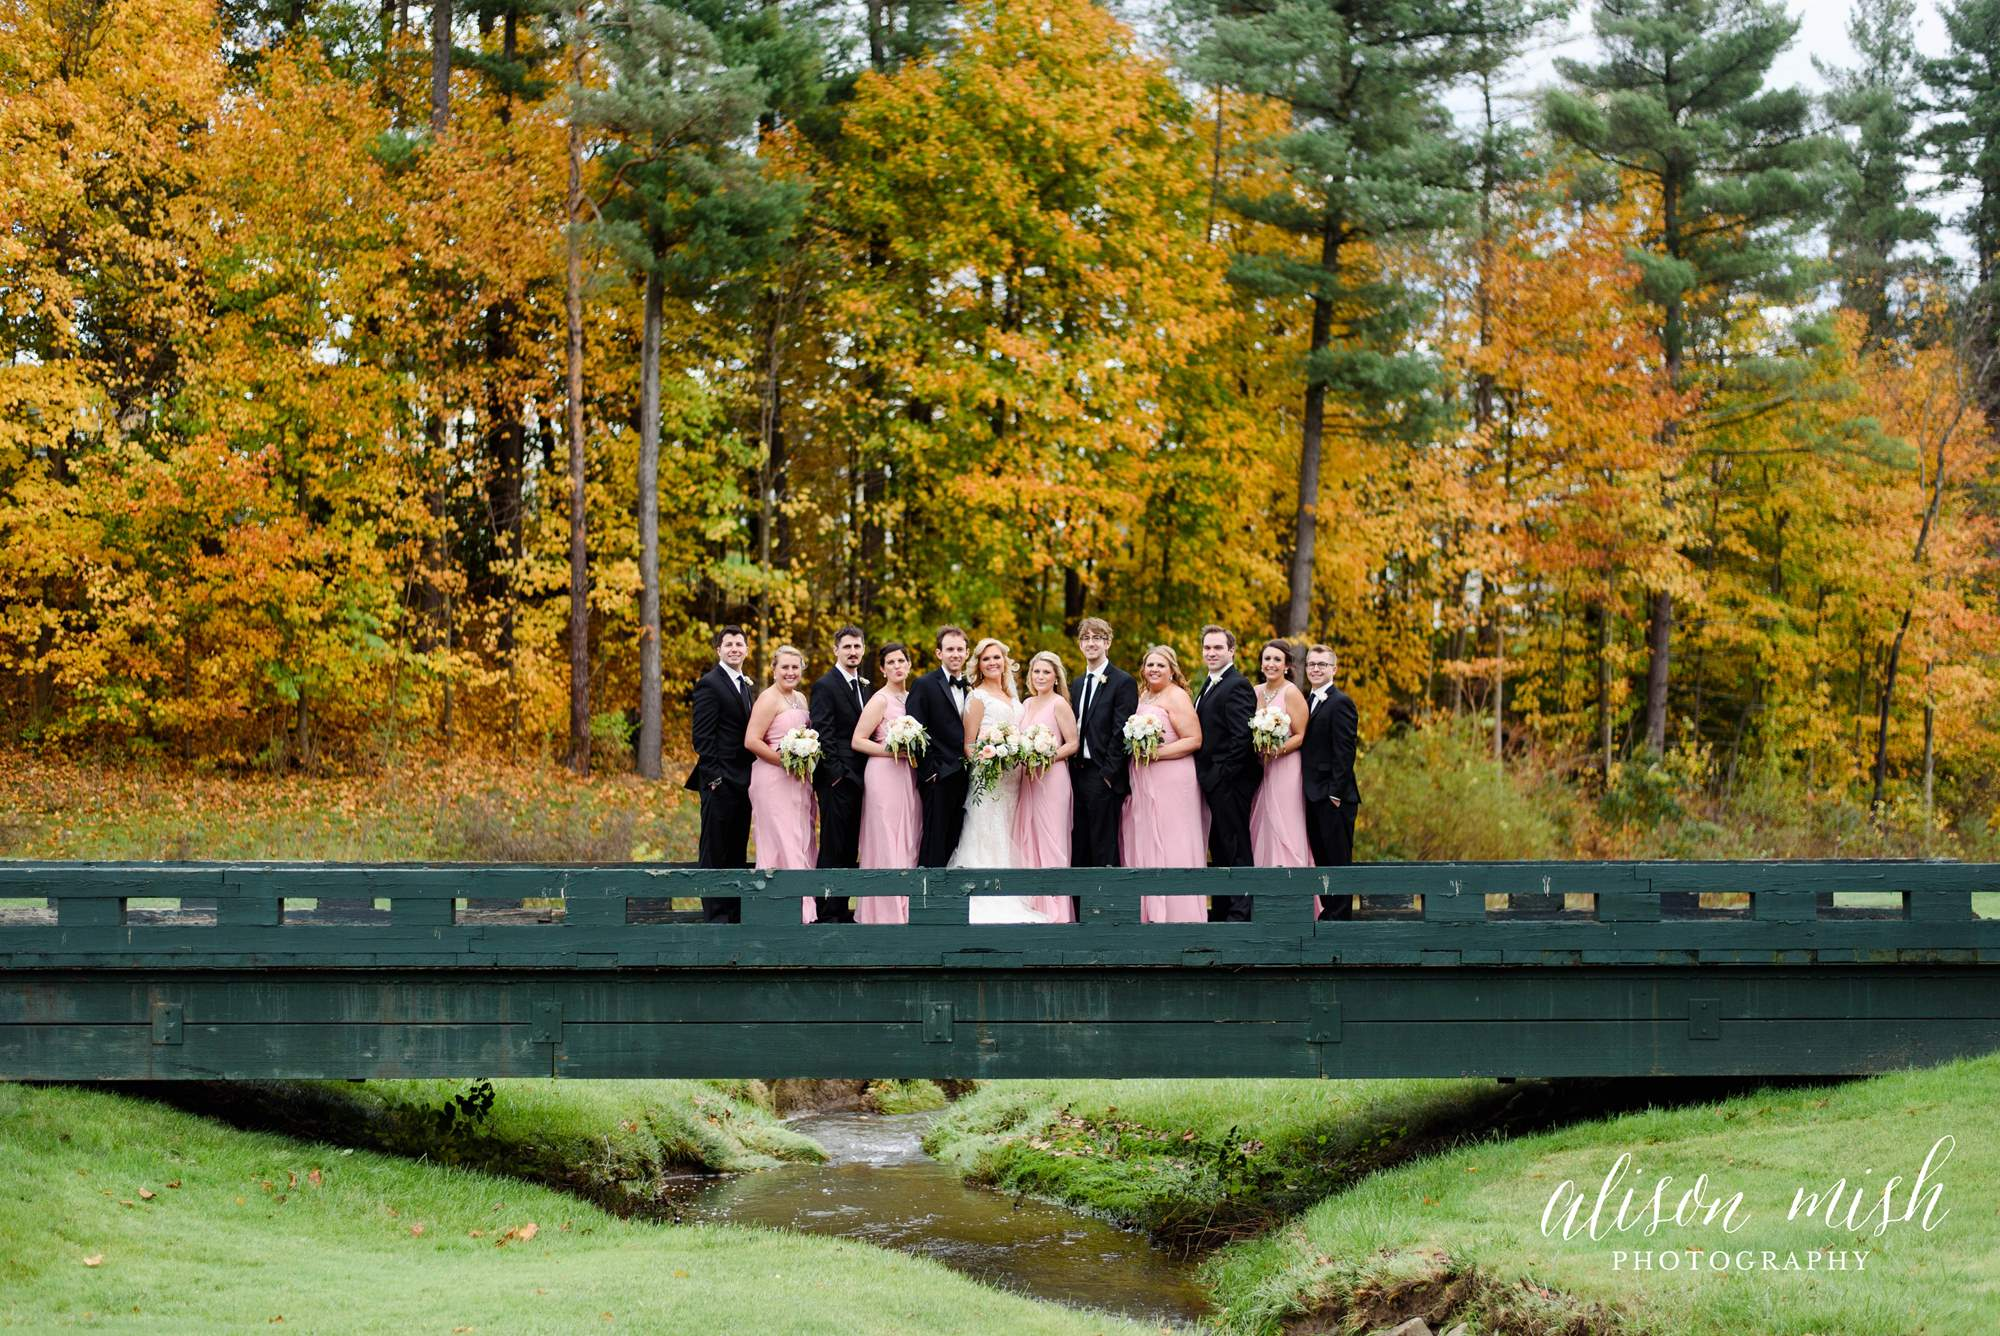 Alexa_and_Ryan-Bridal_Party-0018_with_Watermark